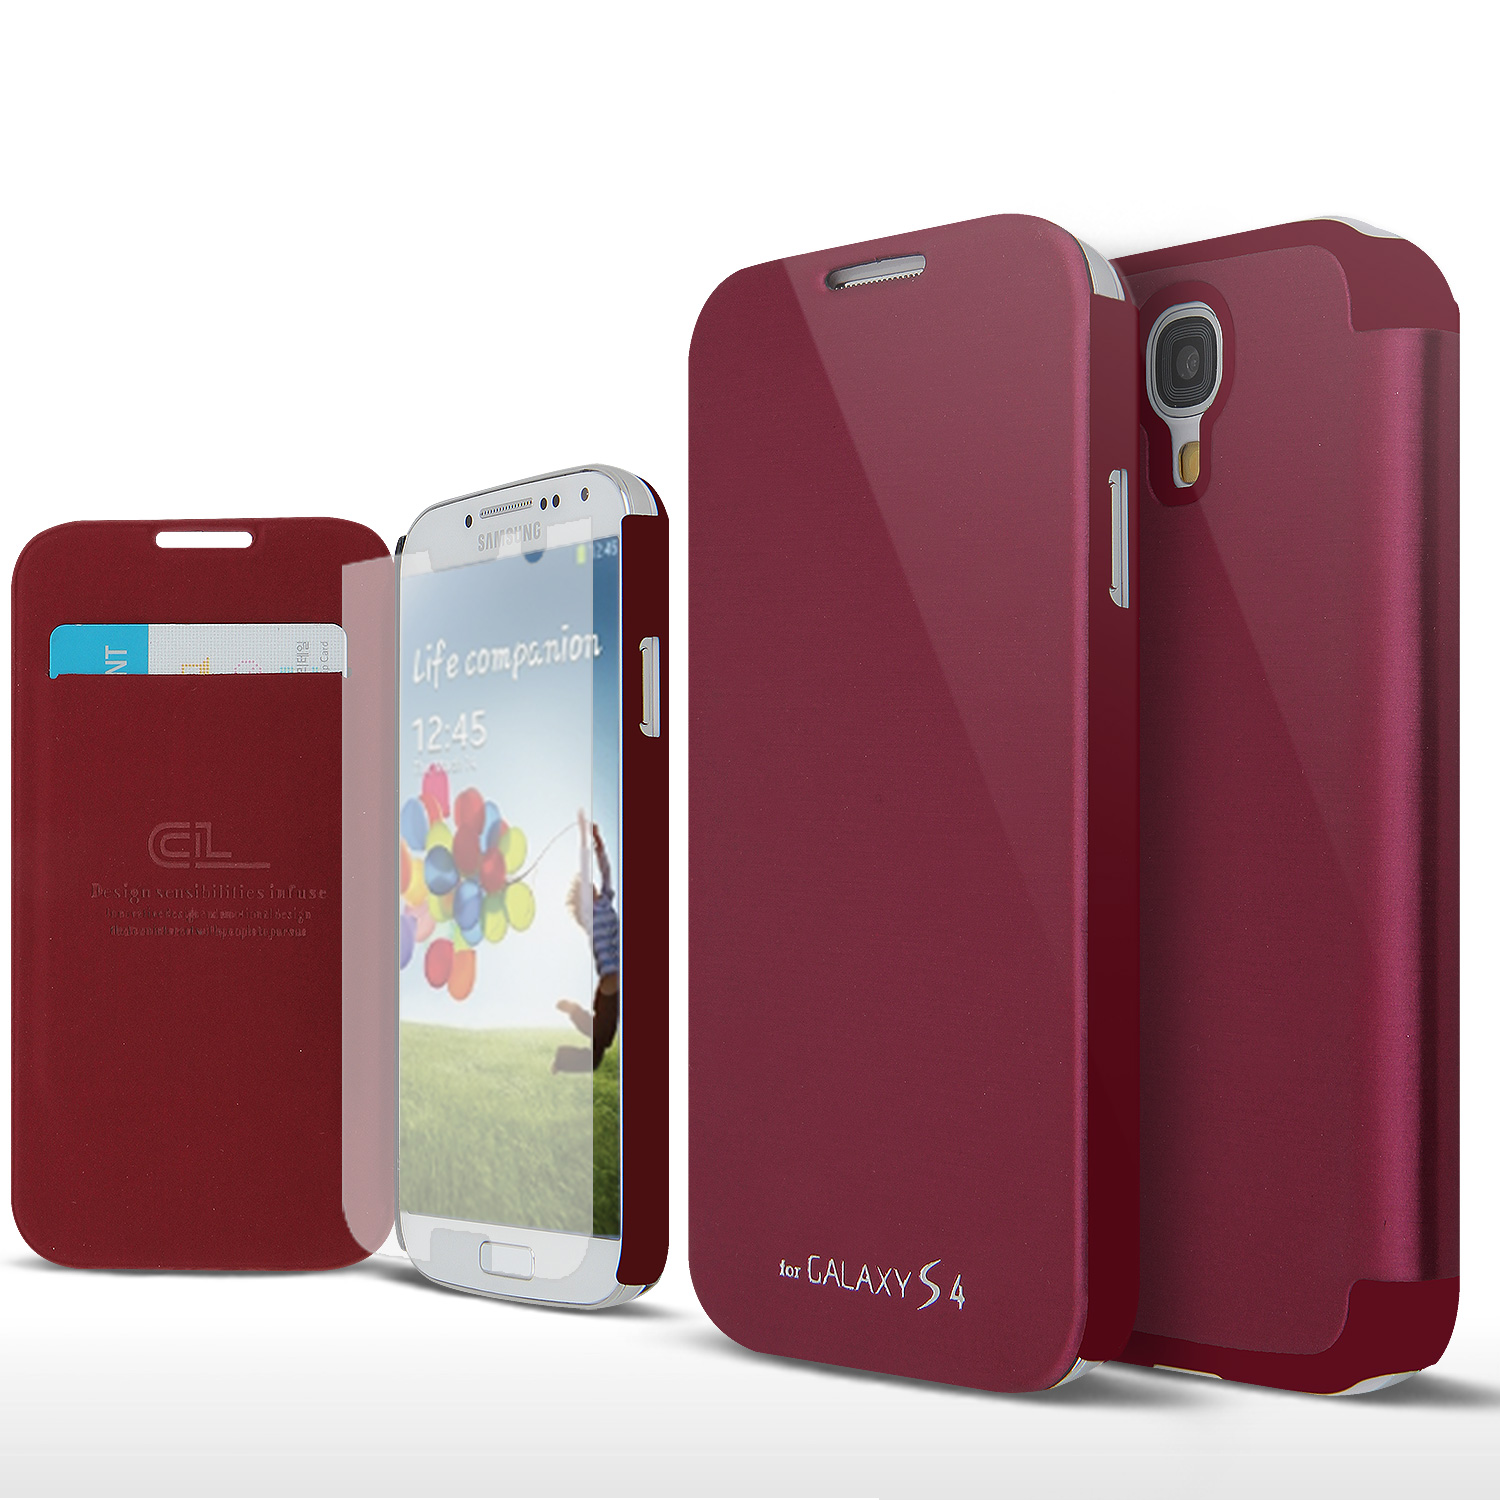 Wine Red Exclusive CellLine Diary Flip Cover Hard Case w/ ID Slot, Satin Cover, & Screen Protector for Samsung Galaxy S4